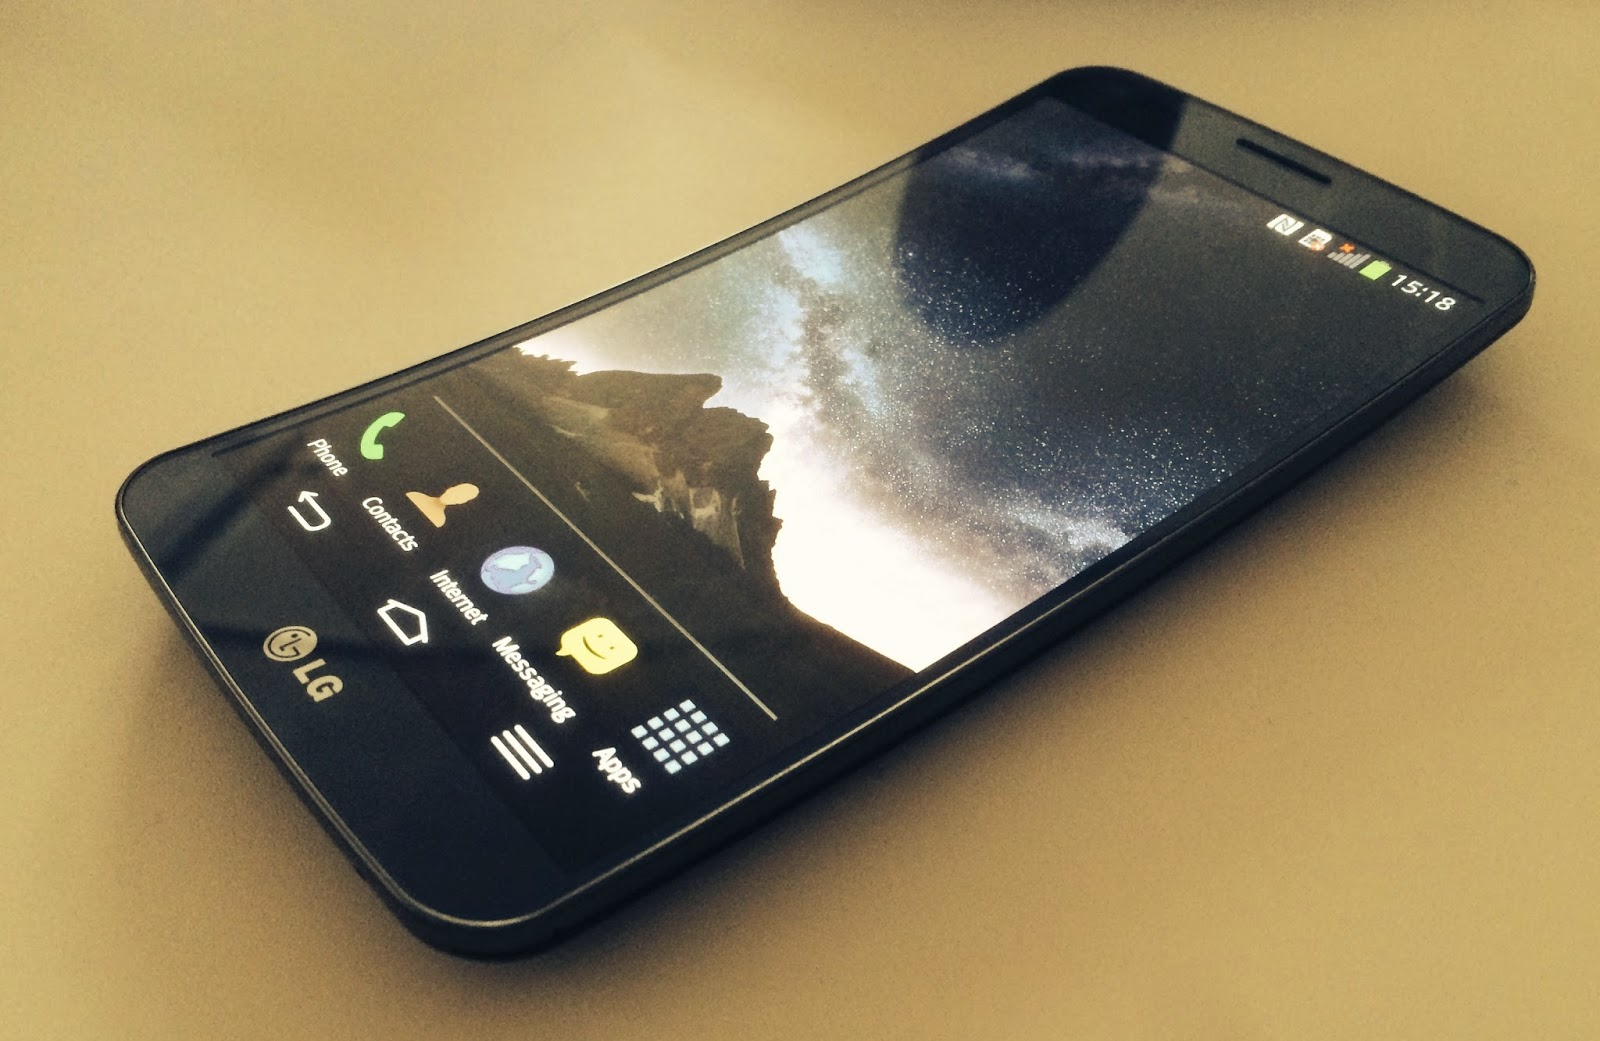 LG curved Smart phone